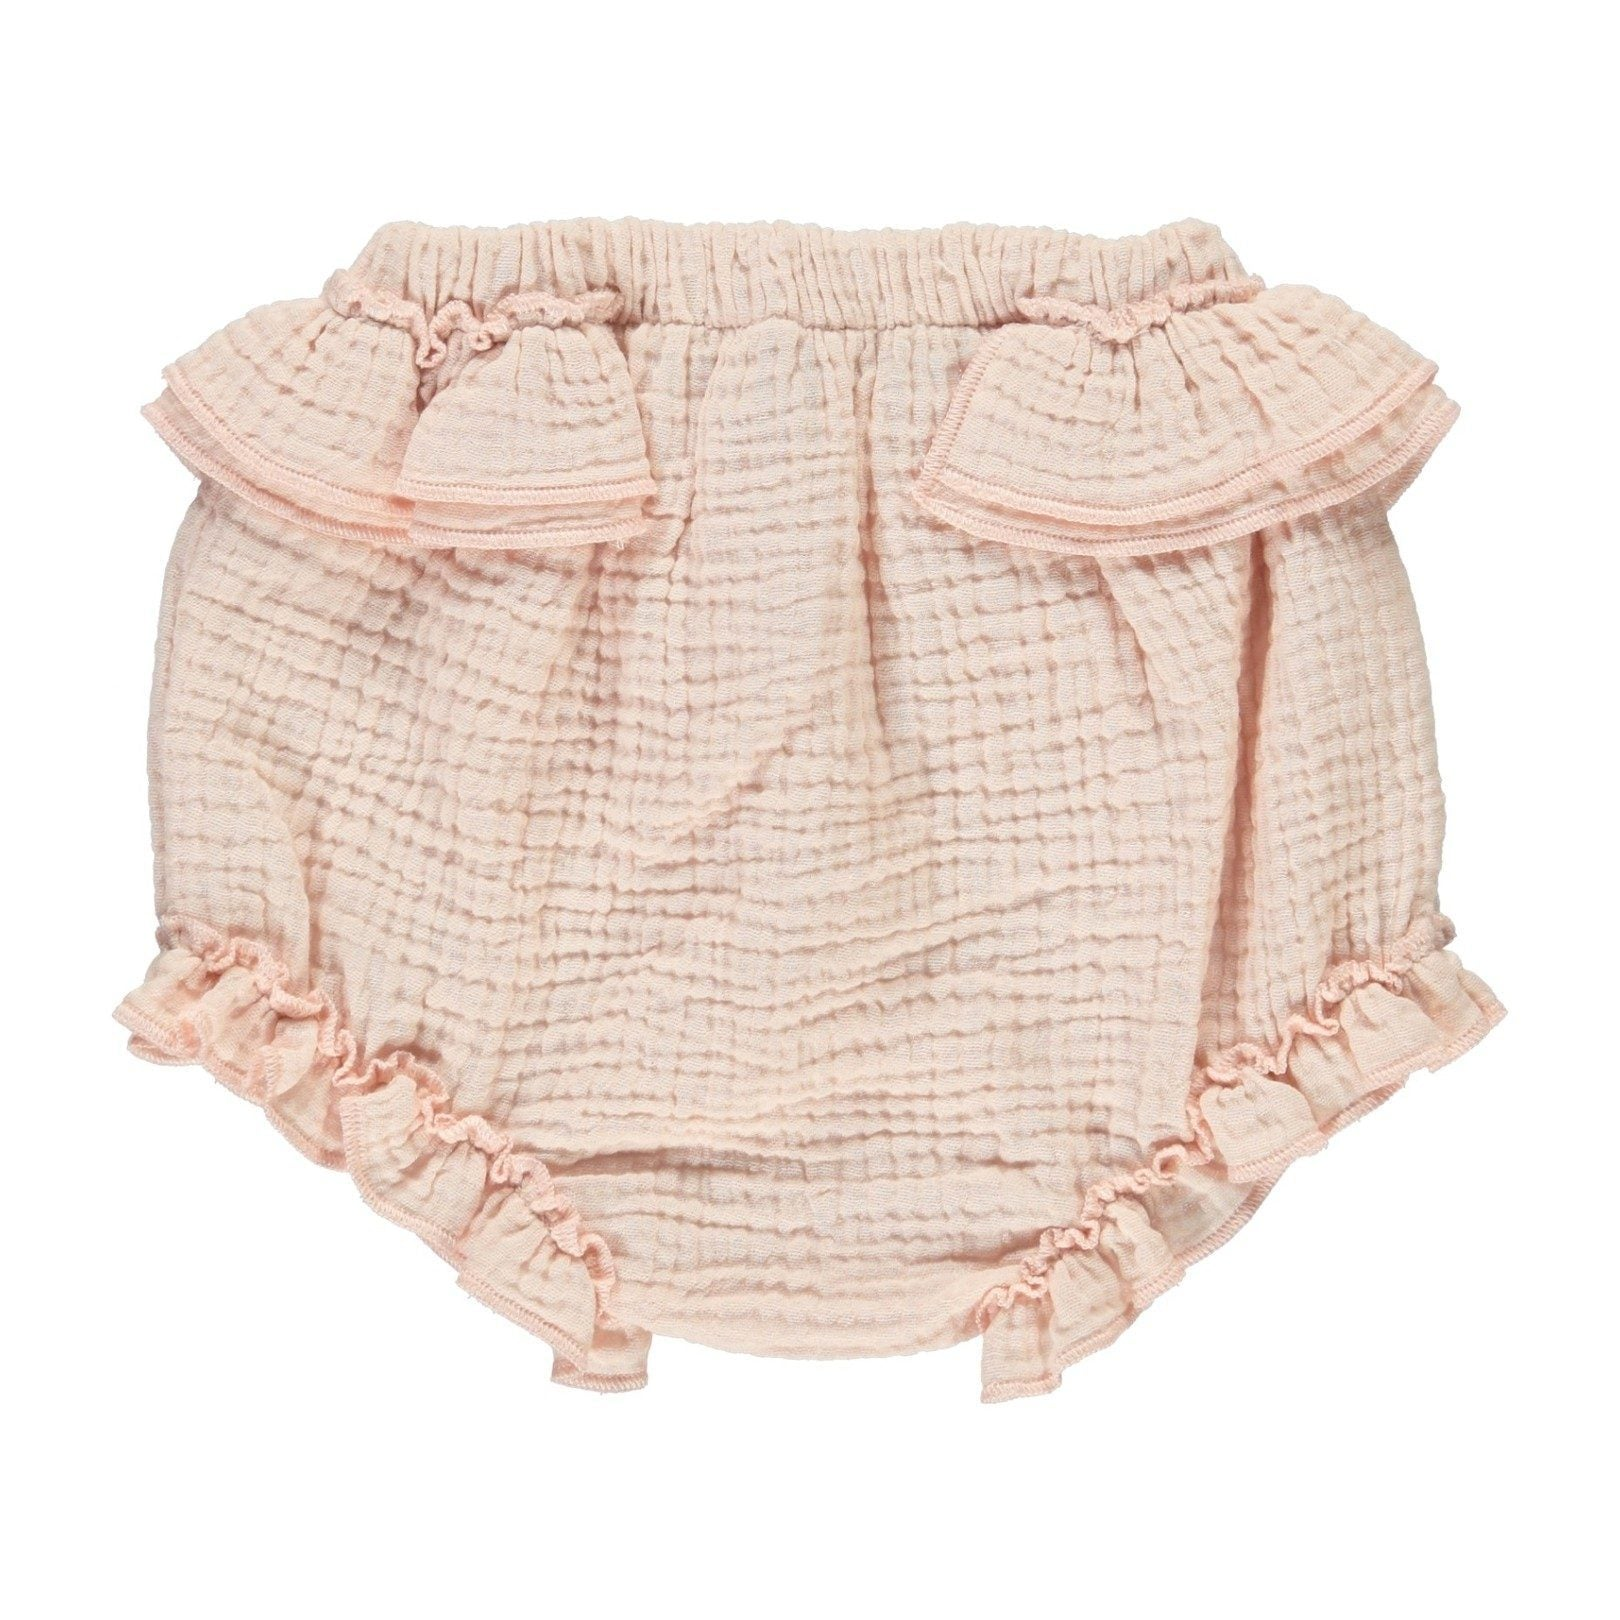 ORGANIC COTTON BABY 'BRANDY' BLOOMER | BEBE ORGANIC - Spinel Boutique